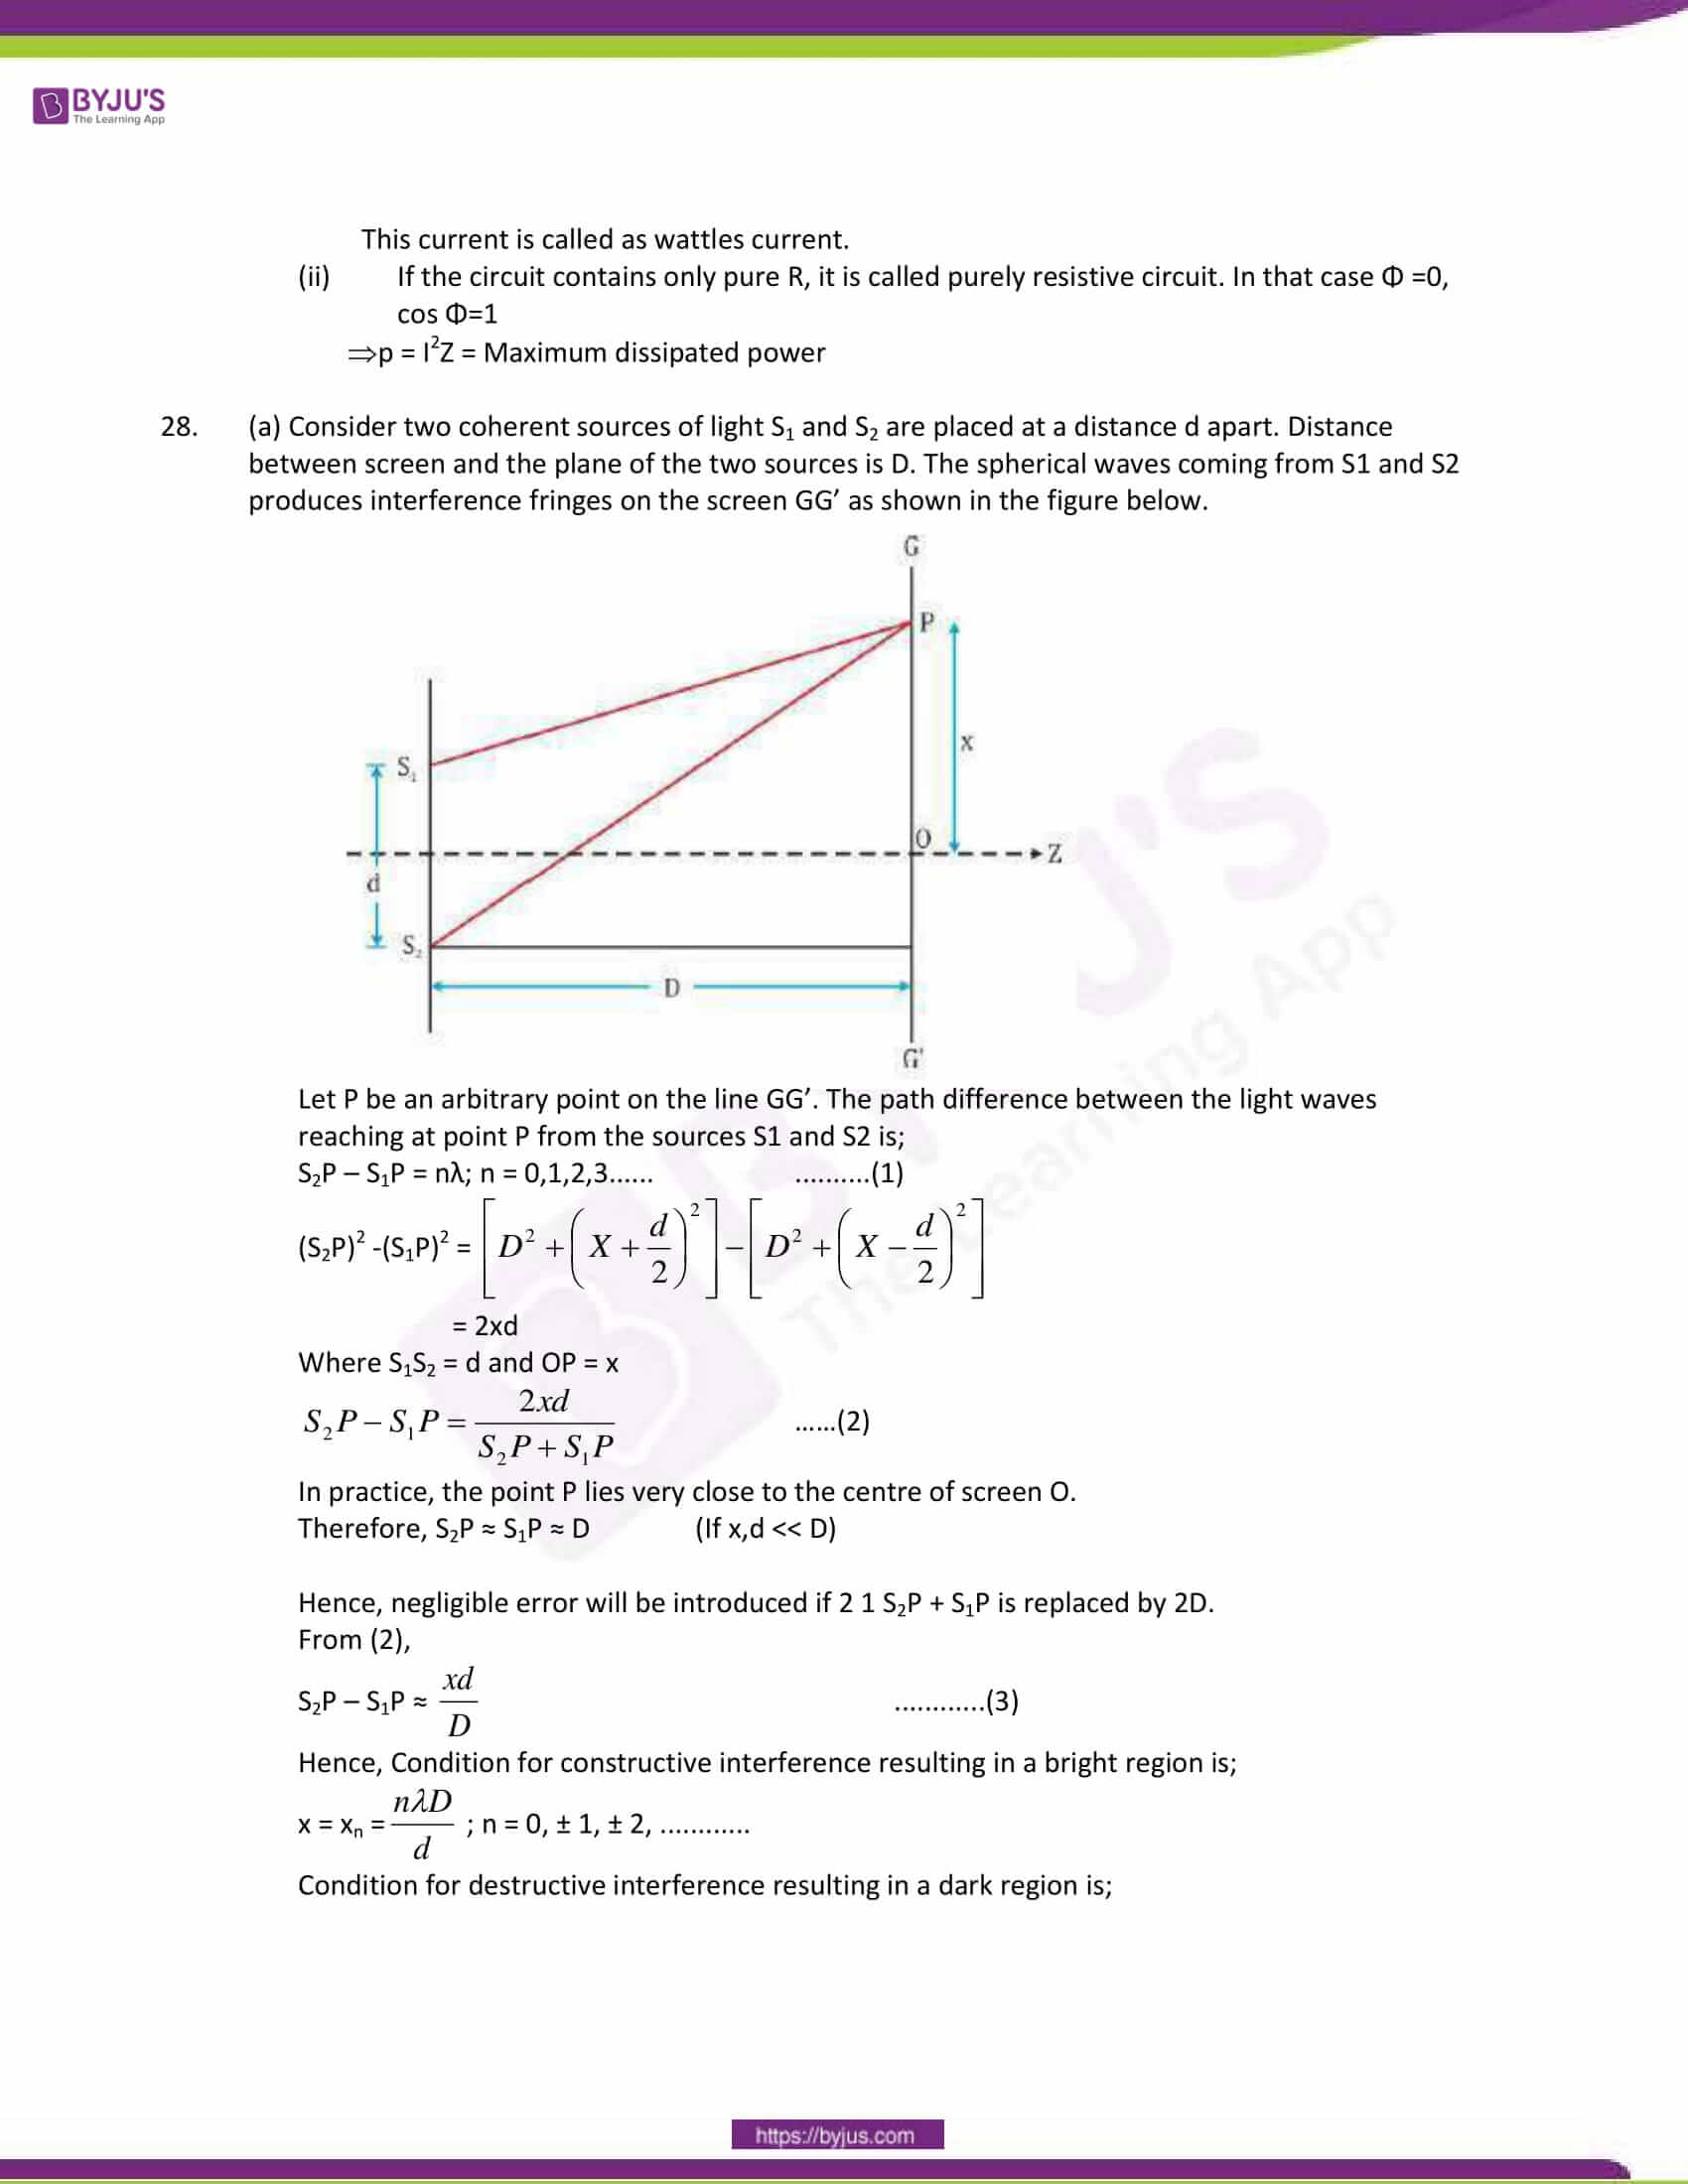 cbse class 12 physics sample paper solution set 2